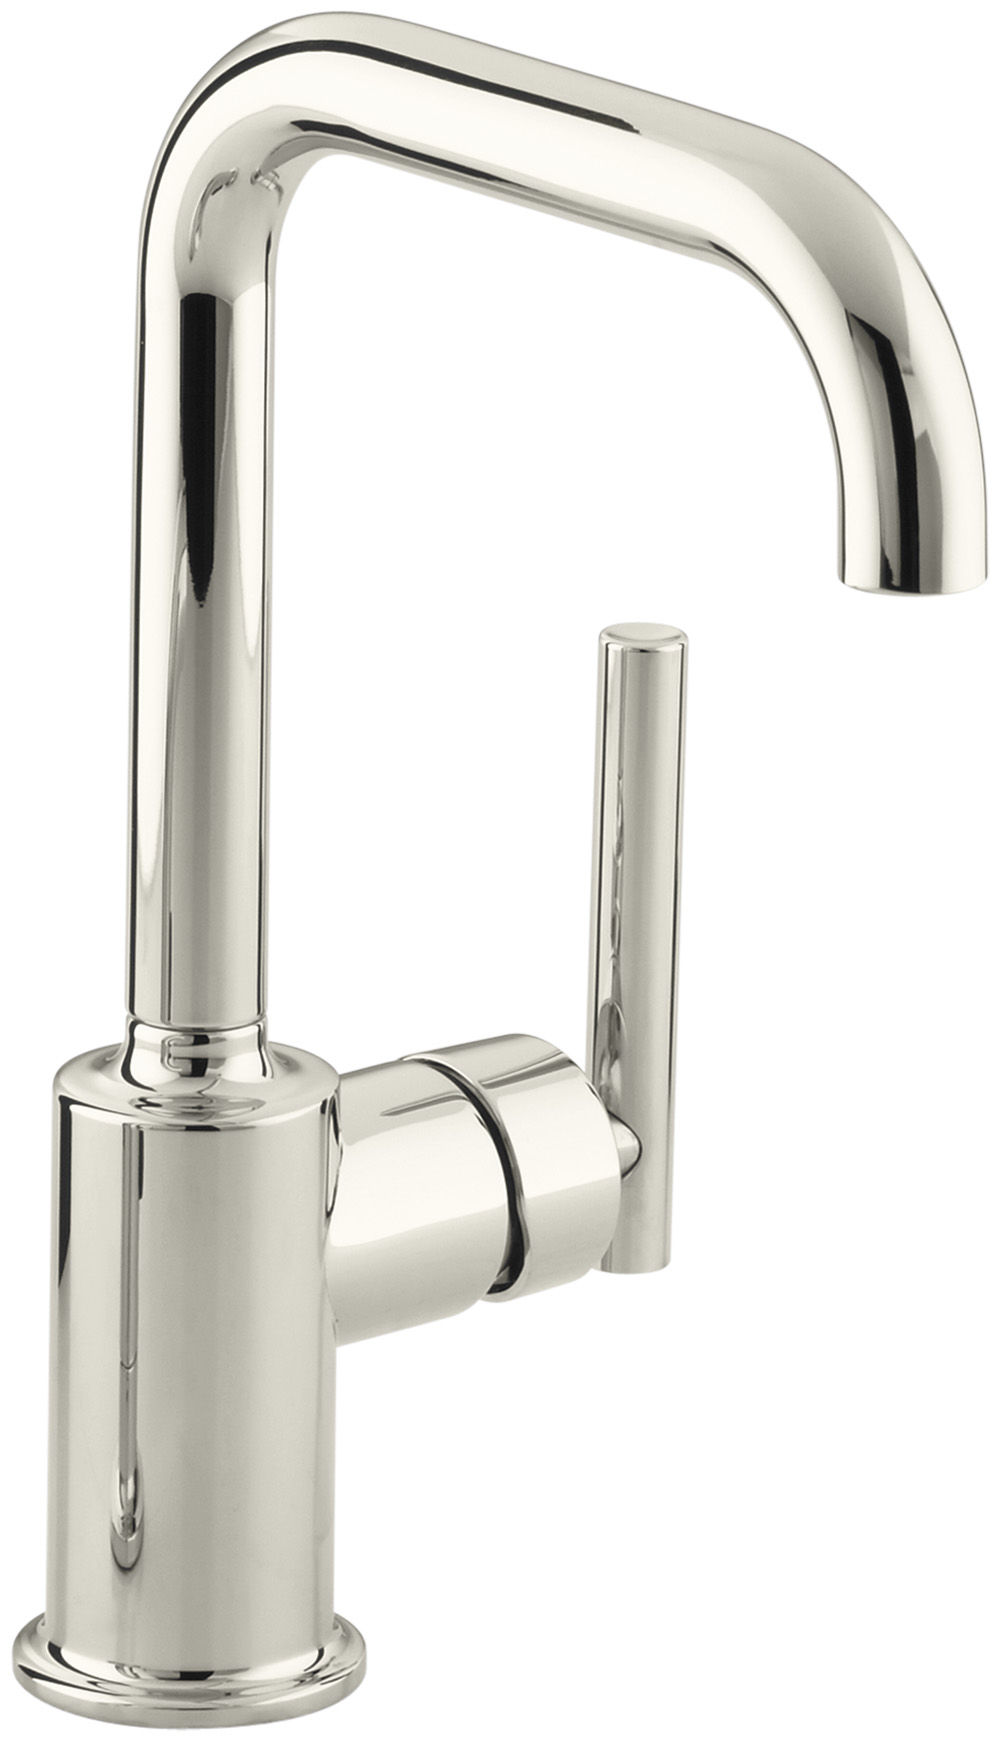 Kohler K-7509-CP Polished Chrome Single Handle Bar Faucet from the ...